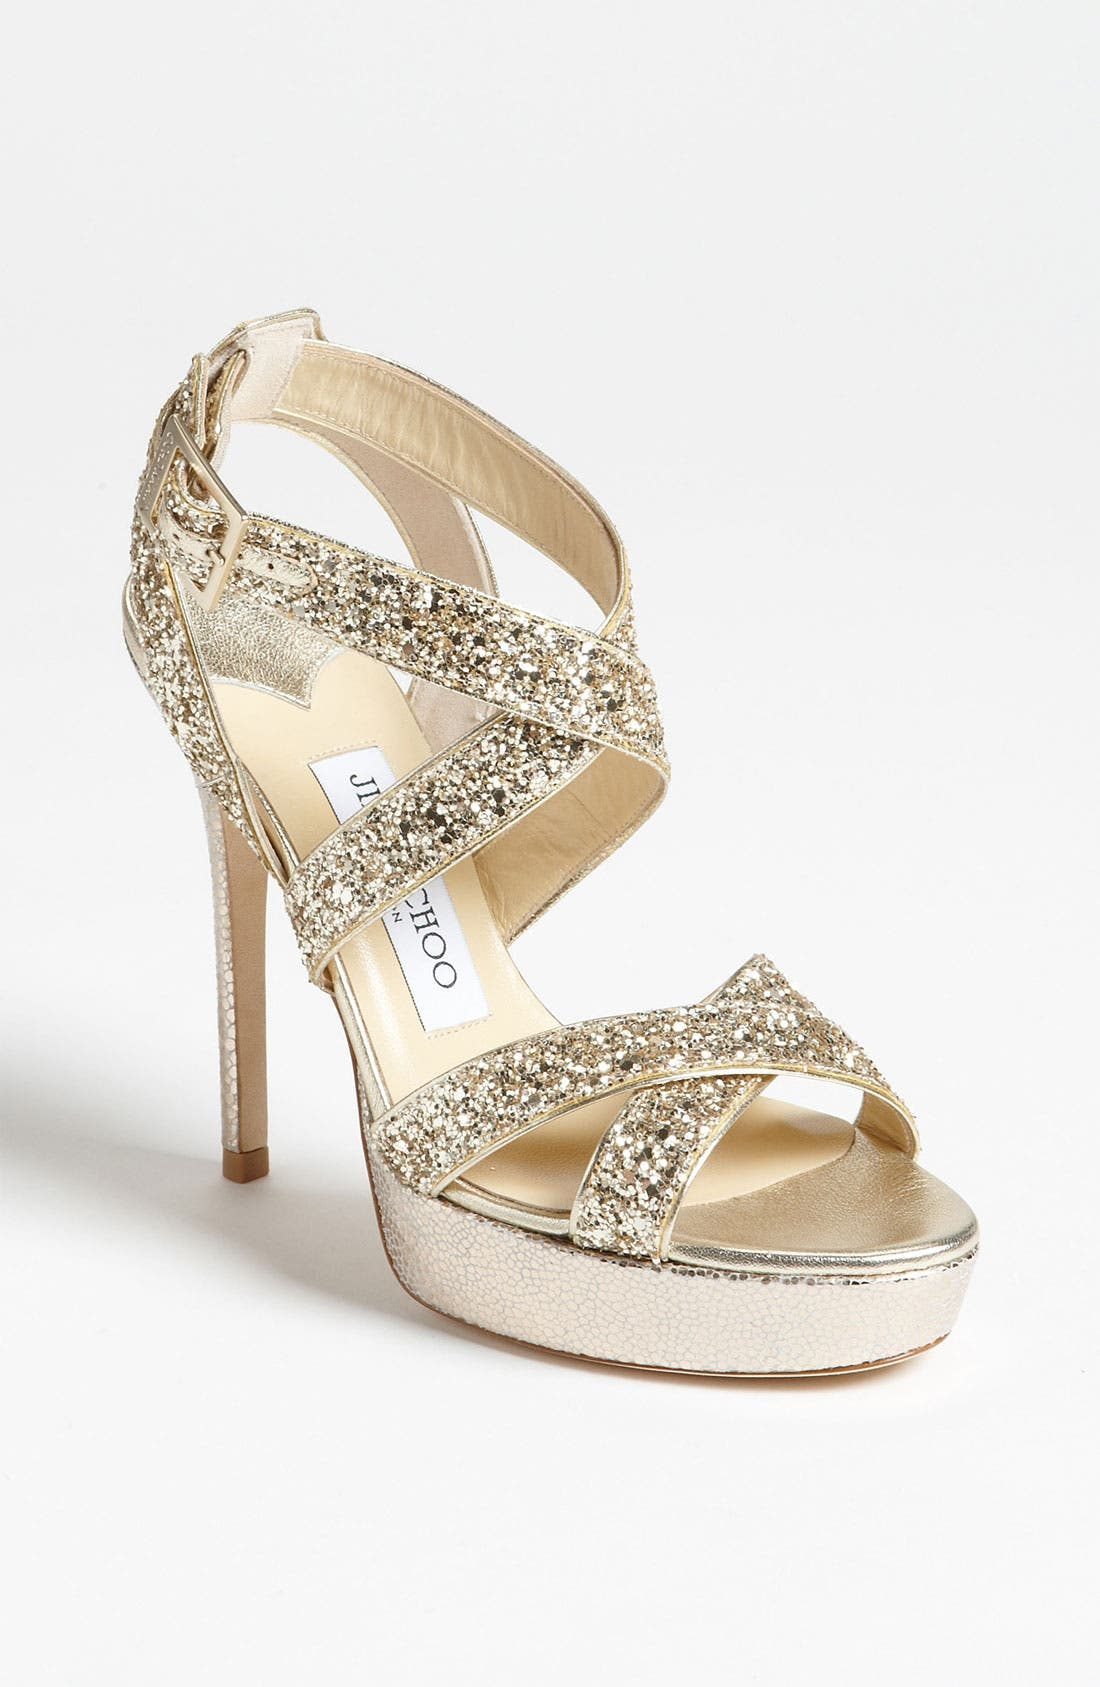 Alternate Image 1 Selected - Jimmy Choo 'Vamp' Sandal